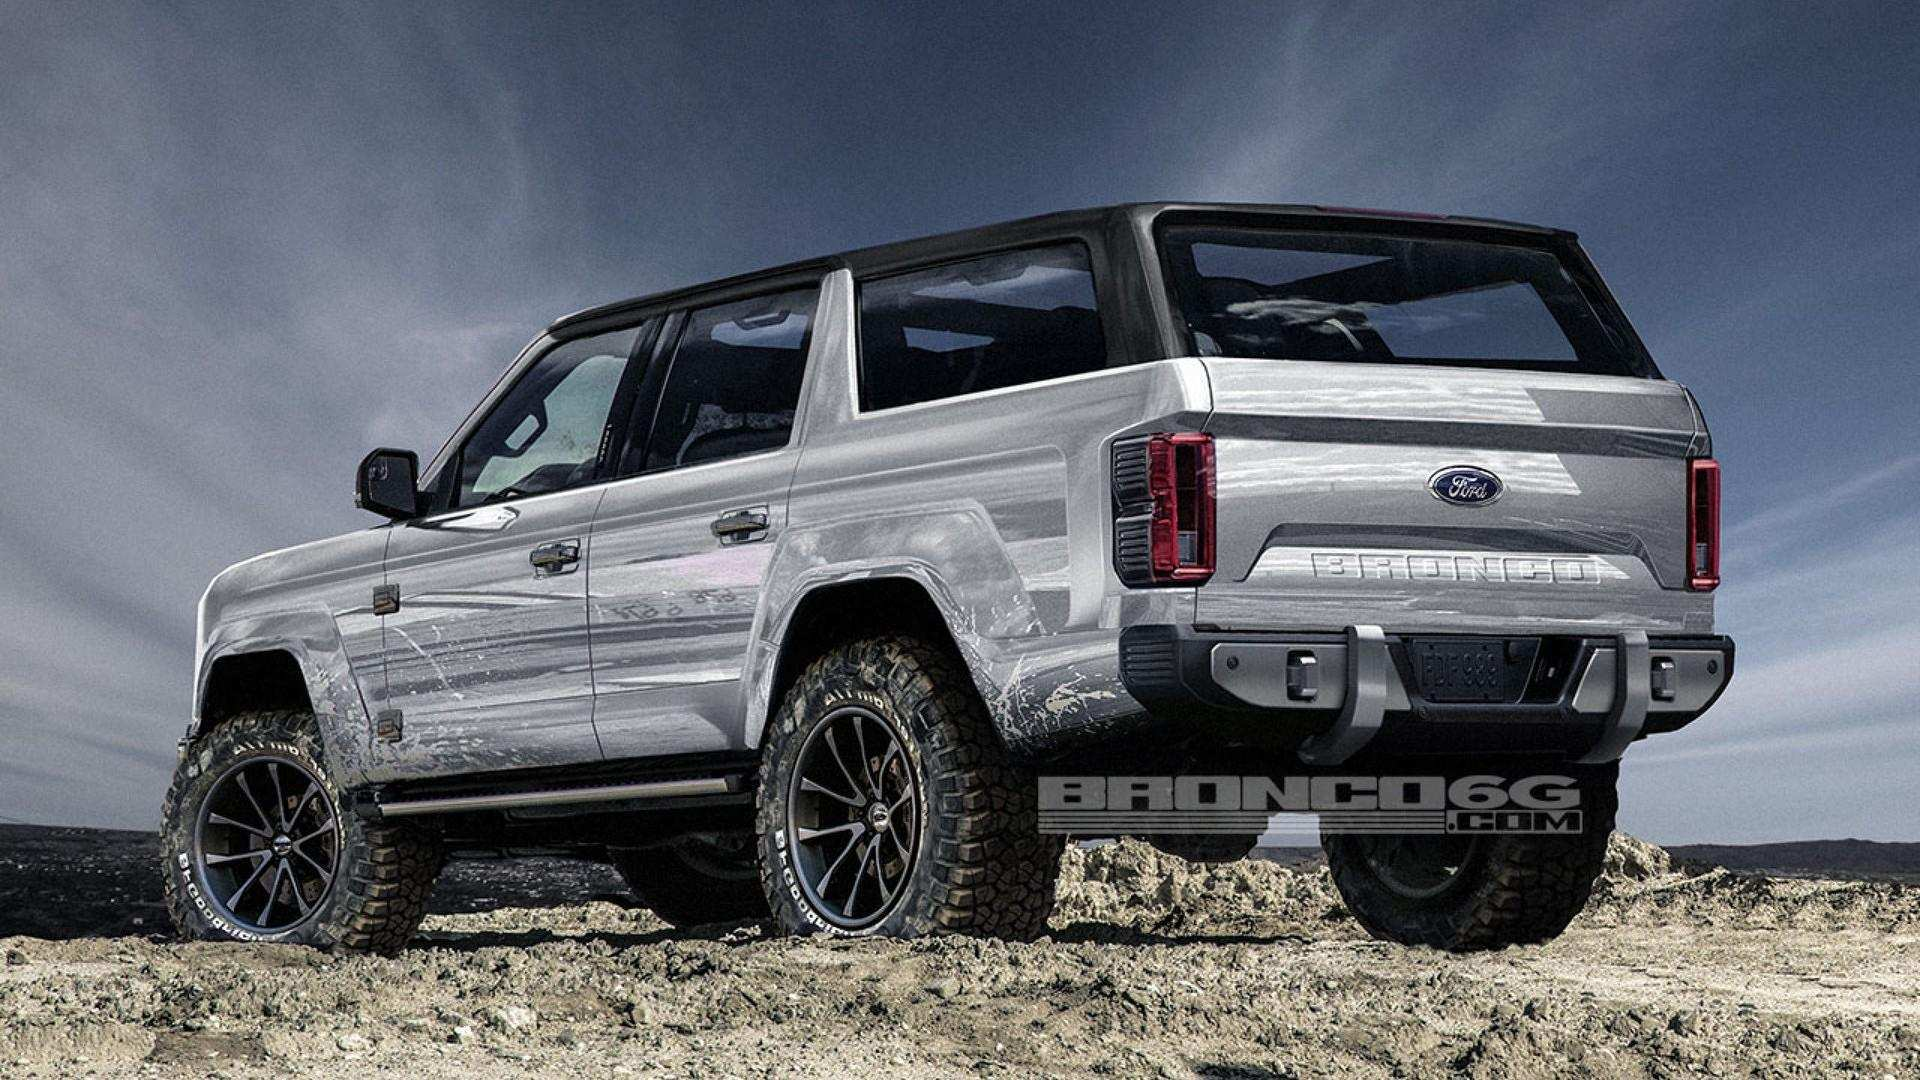 41 Gallery of Price Of 2020 Ford Bronco Specs and Review with Price Of 2020 Ford Bronco